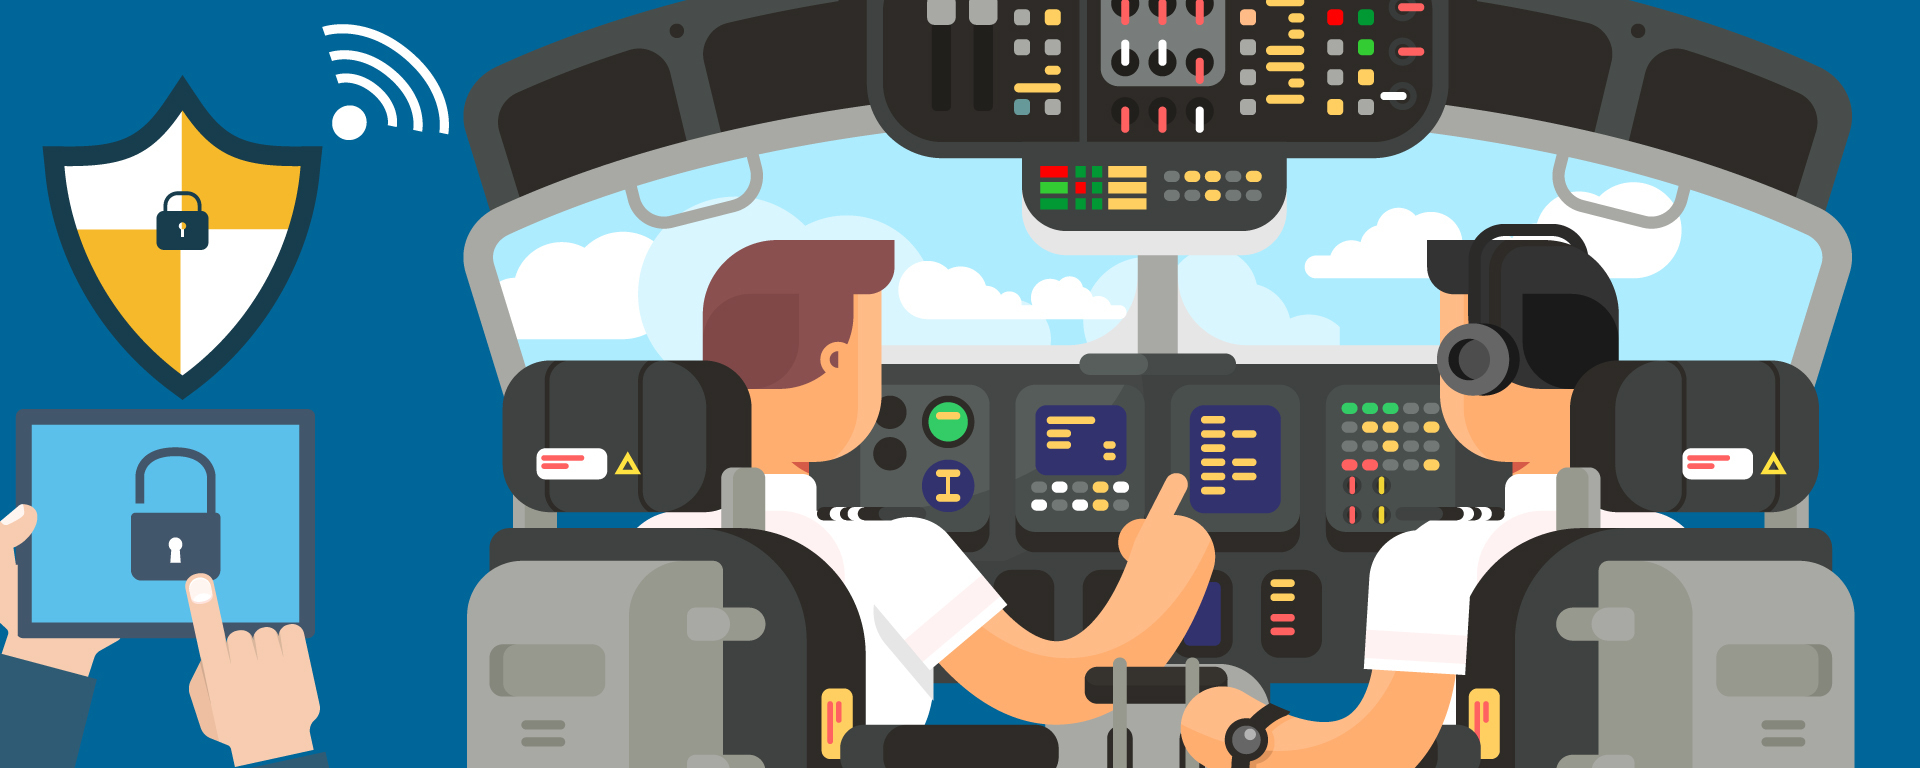 The recent increase in the use of Wi-Fi and mobile devices while in flight highlights a need for increased aviation cybersecurity.